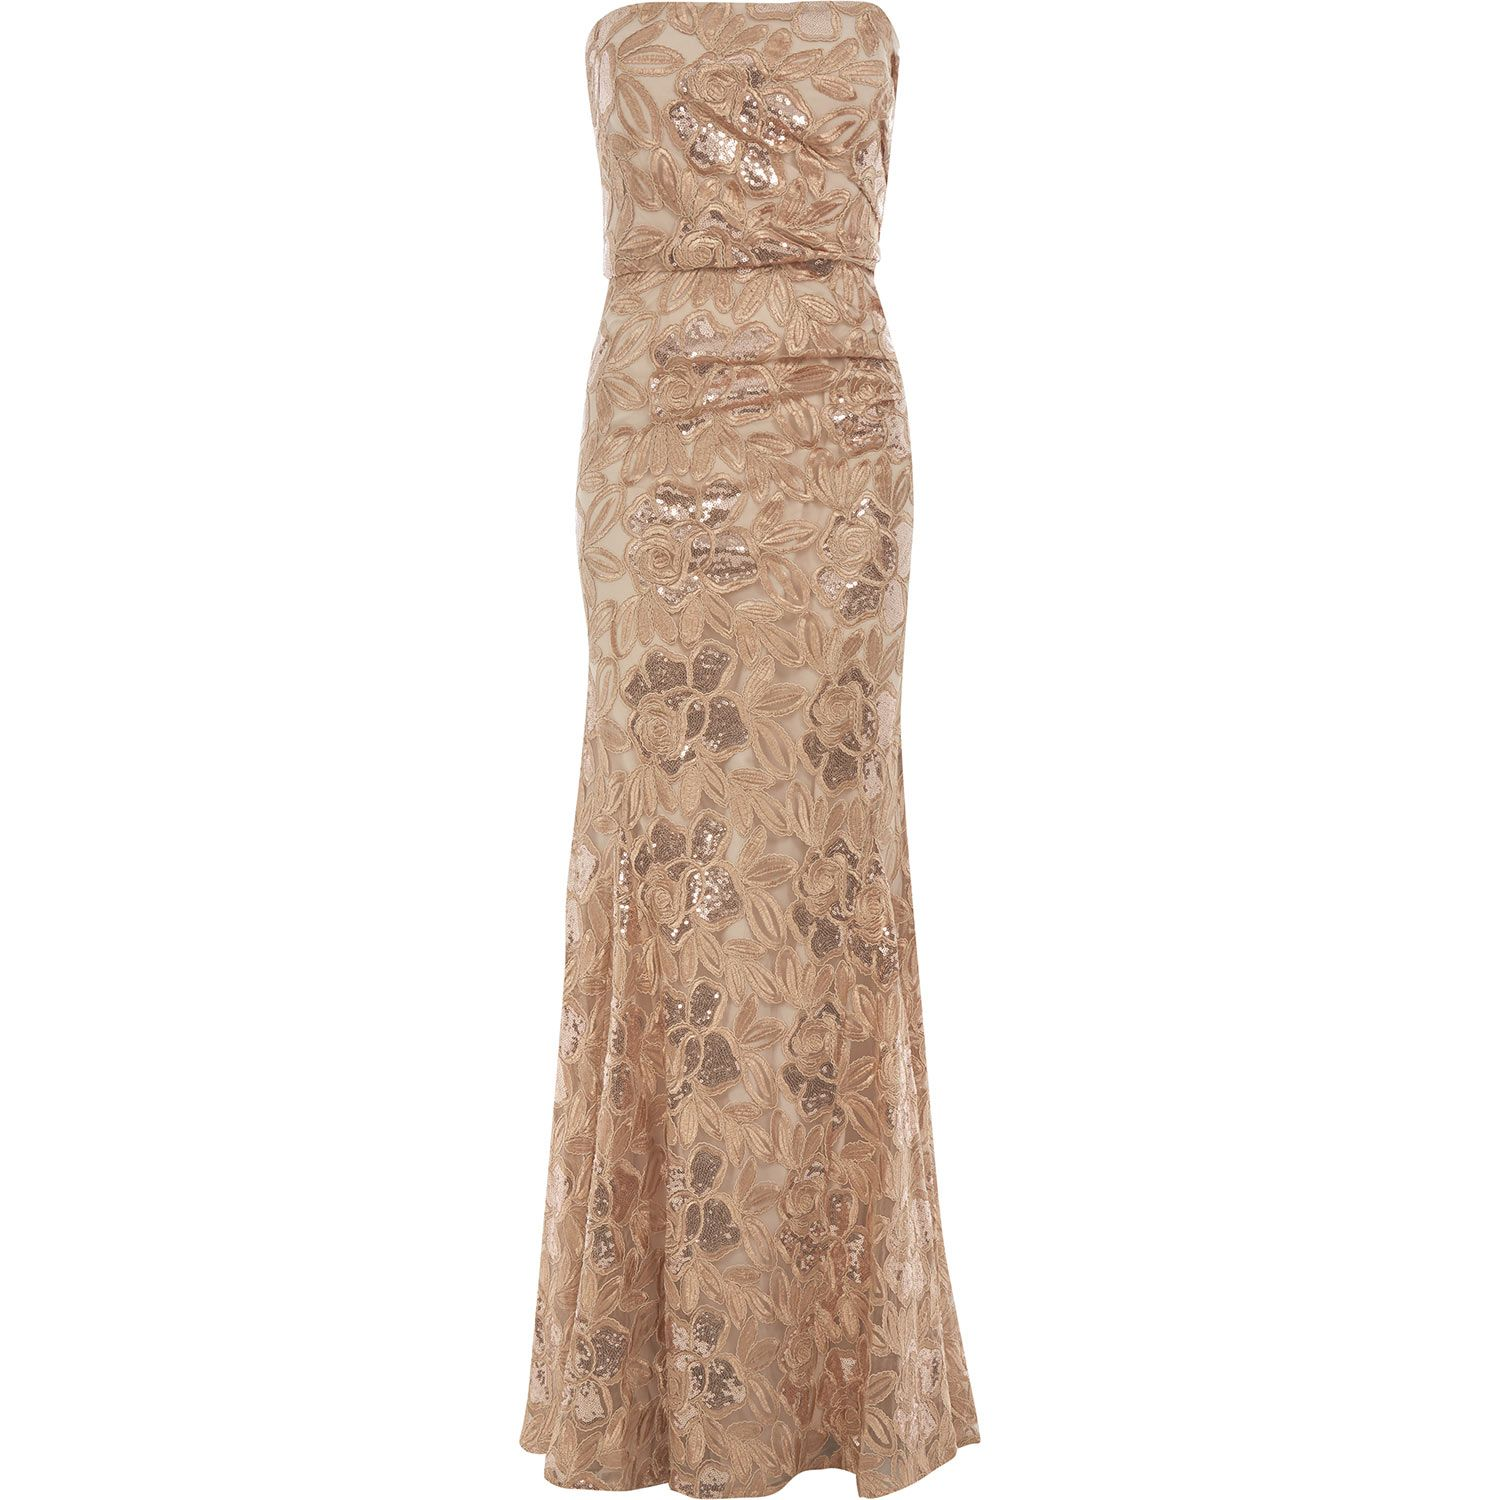 Like New Gold Badgley Mischka Dress Worn Once For A Wedding No Alterations Or Damage